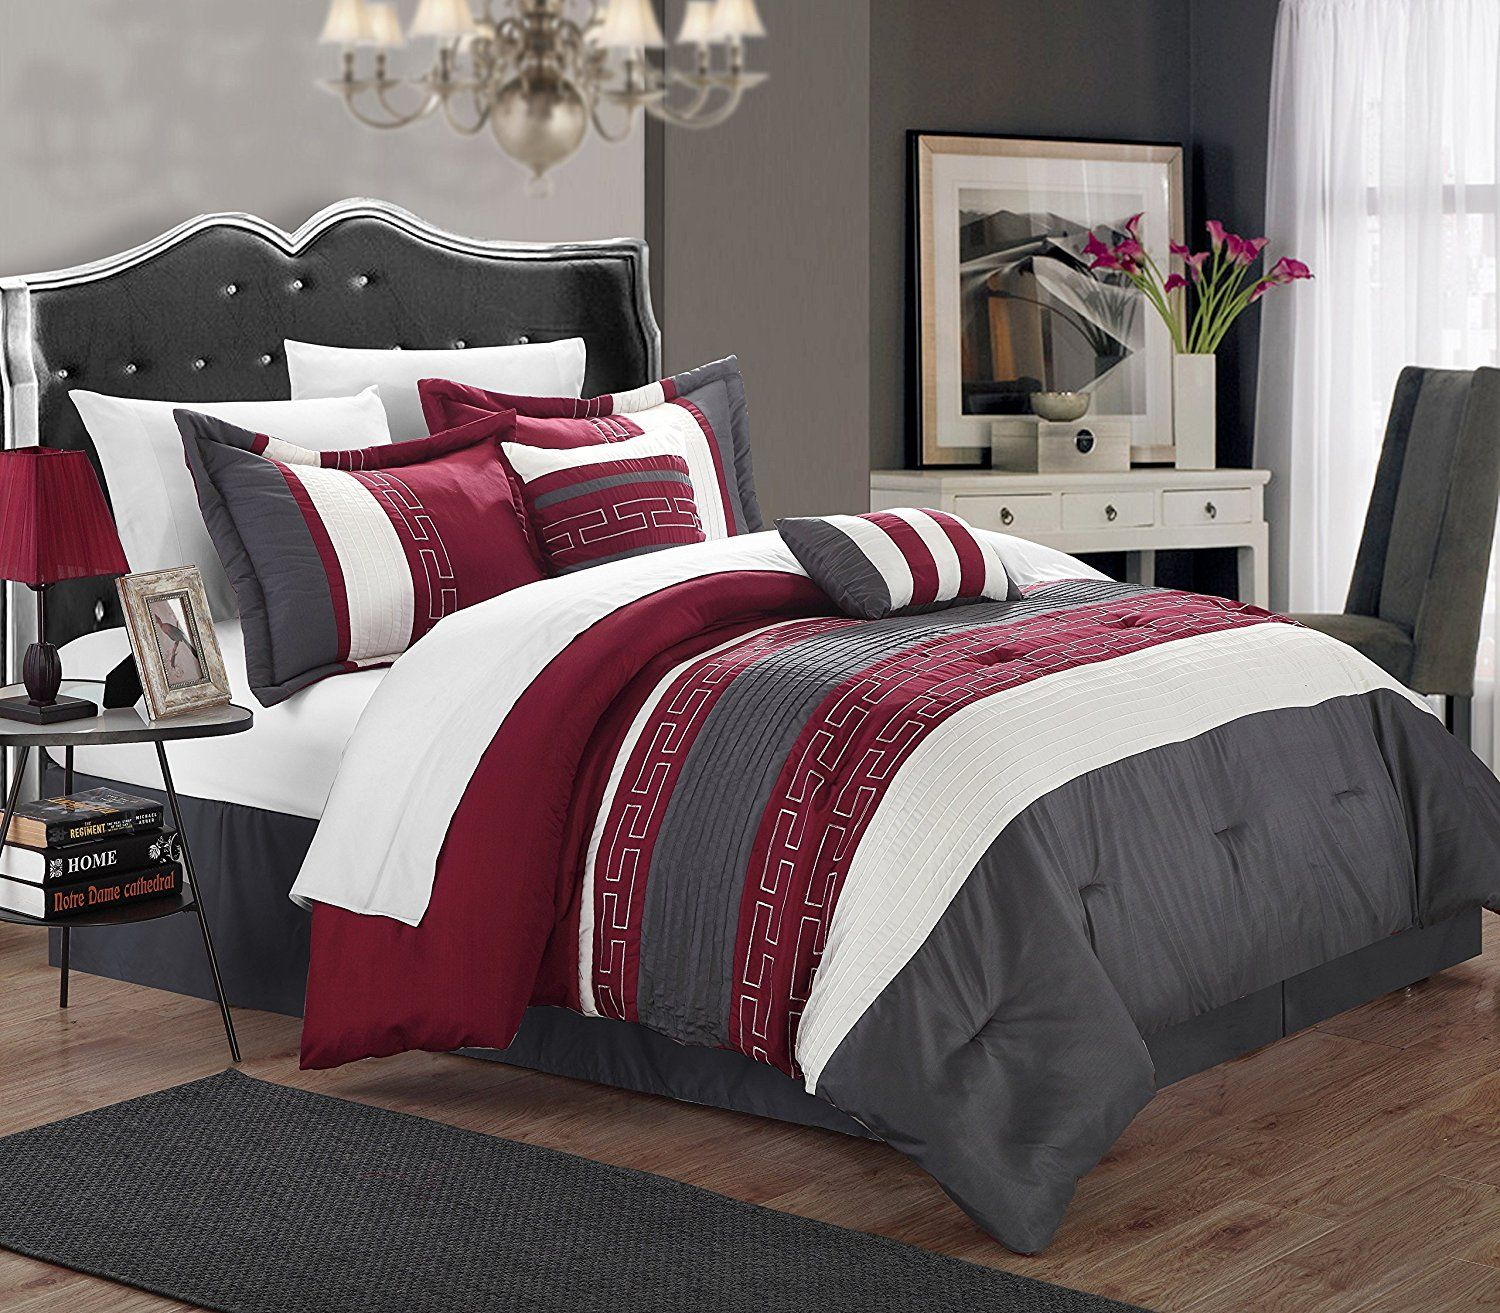 matching cheap bedroom comforter comforters s curtains ding sets queen and